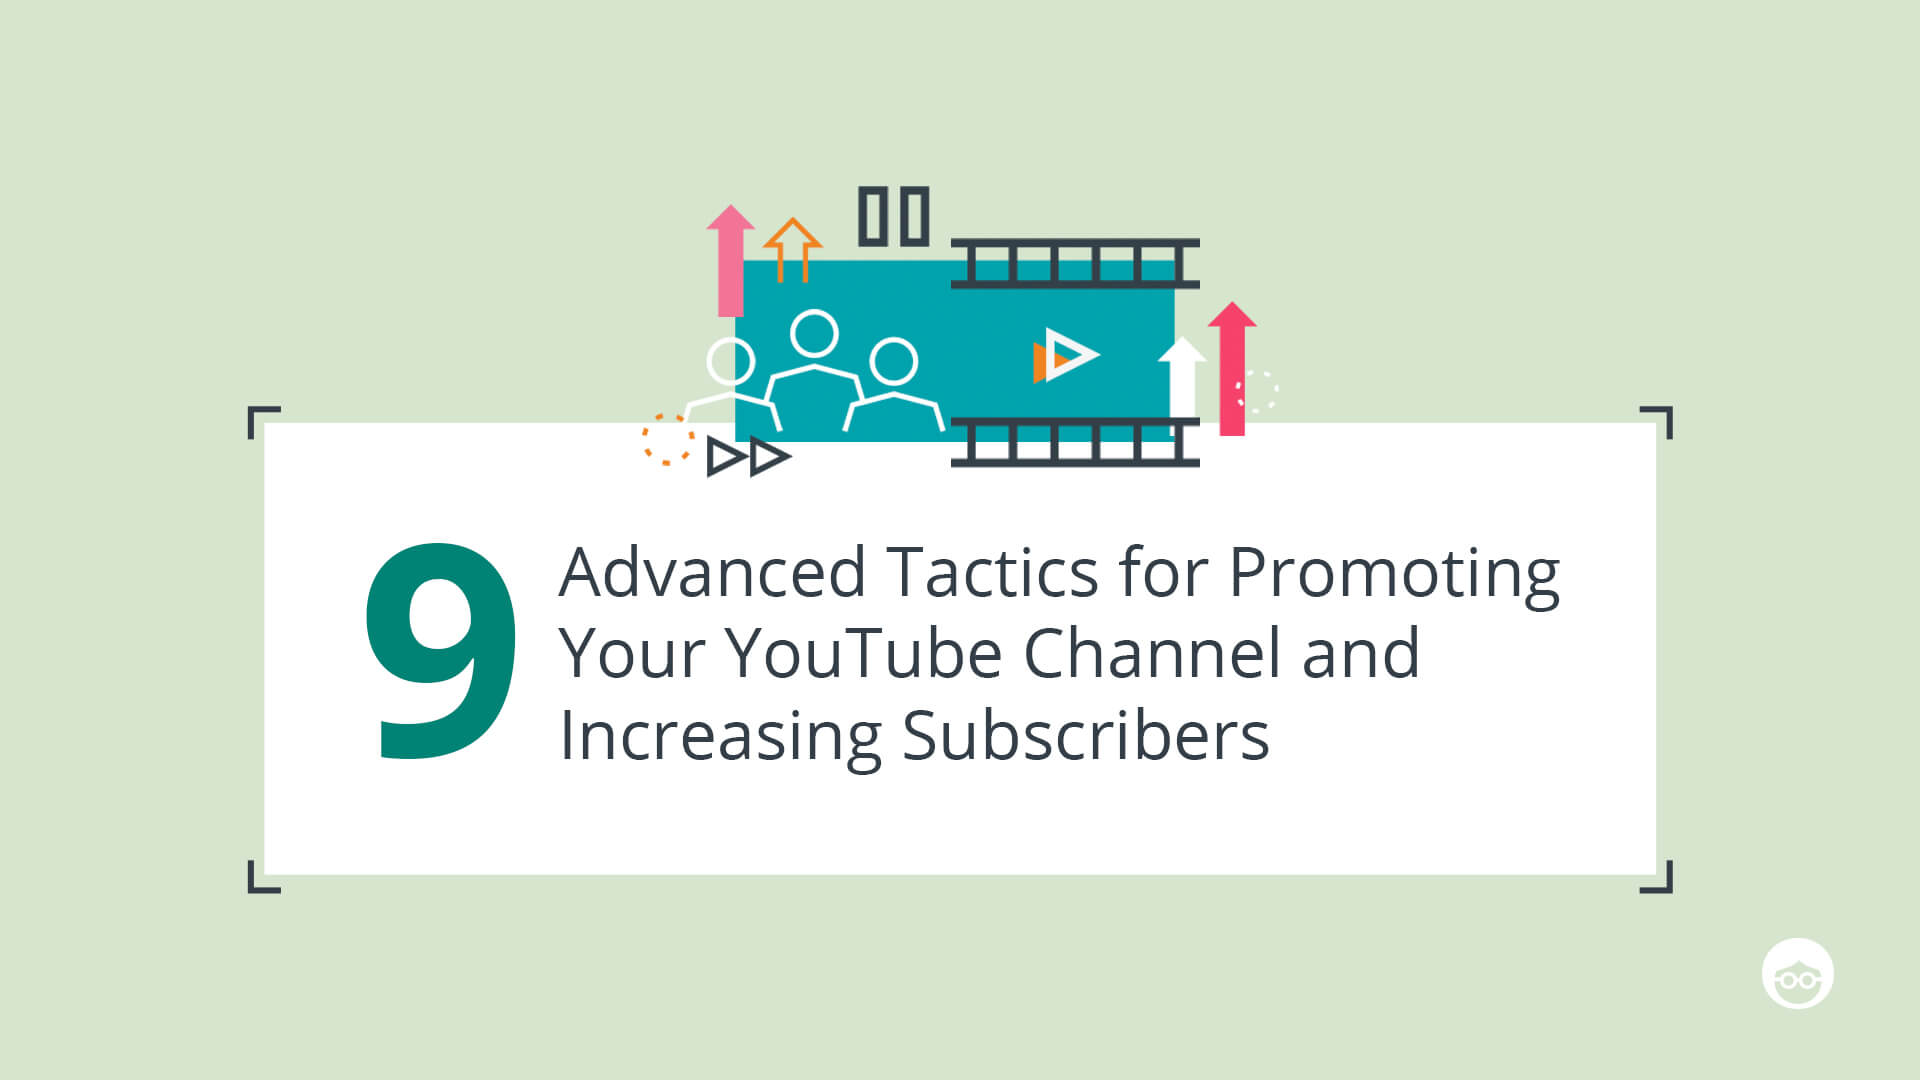 Promoting Your YouTube Channel